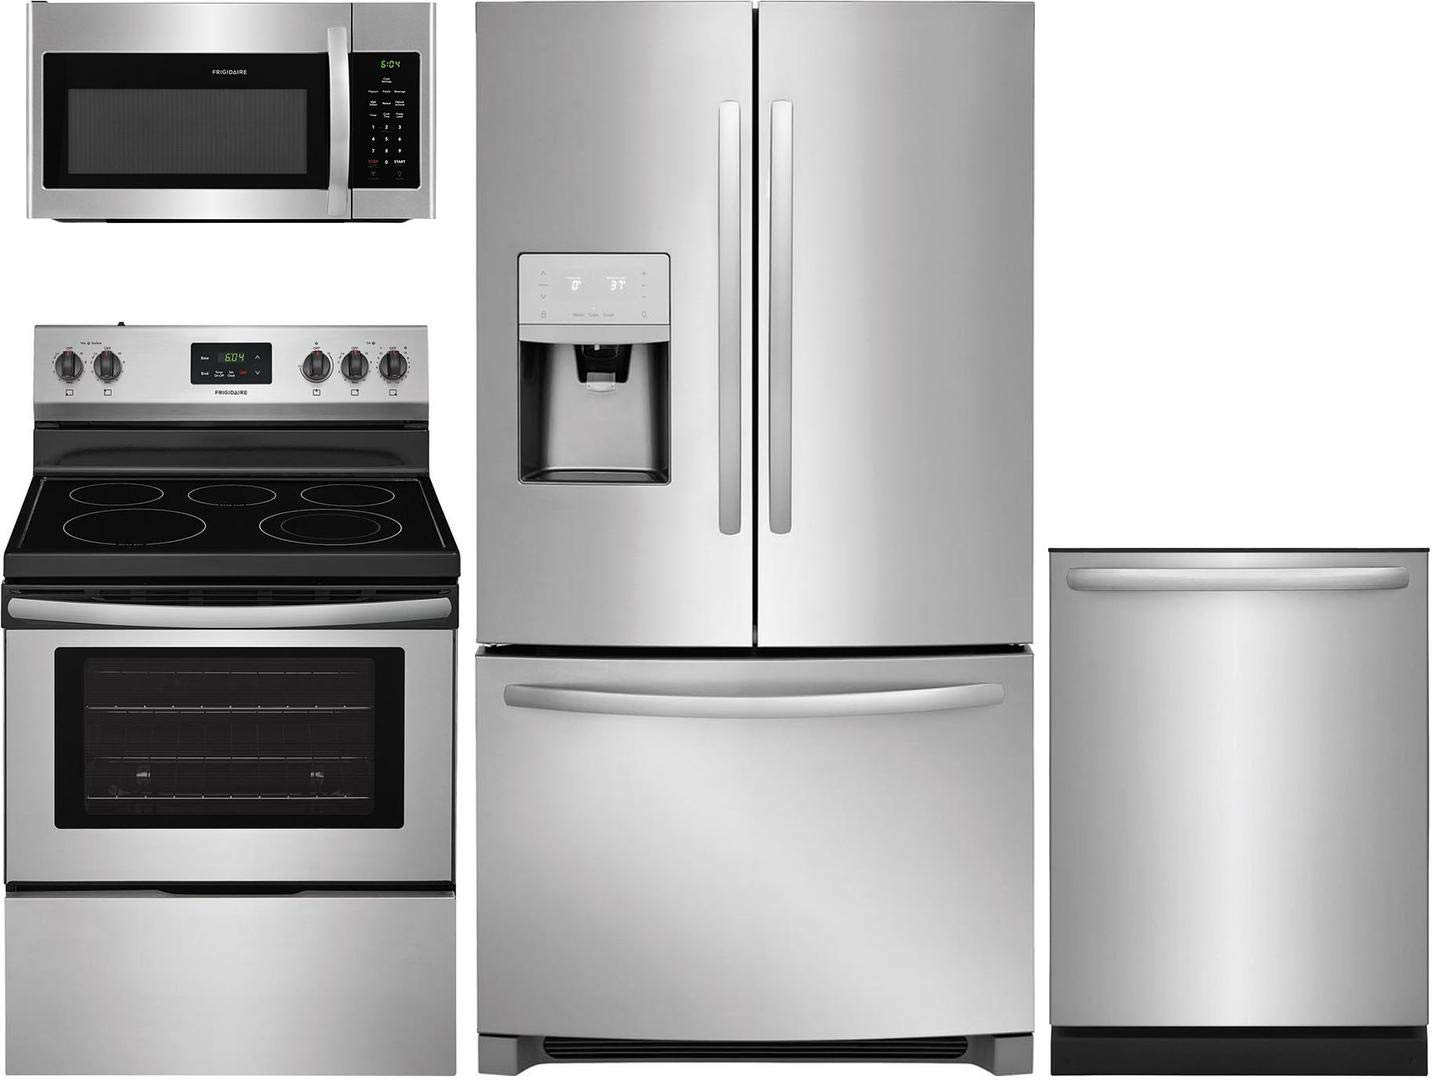 """Frigidaire 4 Piece Kitchen Package with FFHB2750TS 36"""" French Door Refrigerator, FFEF3052TS 30"""" Elec. Range, FFMV1645TS 30"""" Over the Range Microwave and FFID2426TS 24"""" Built In D/W in Stainless Steel"""